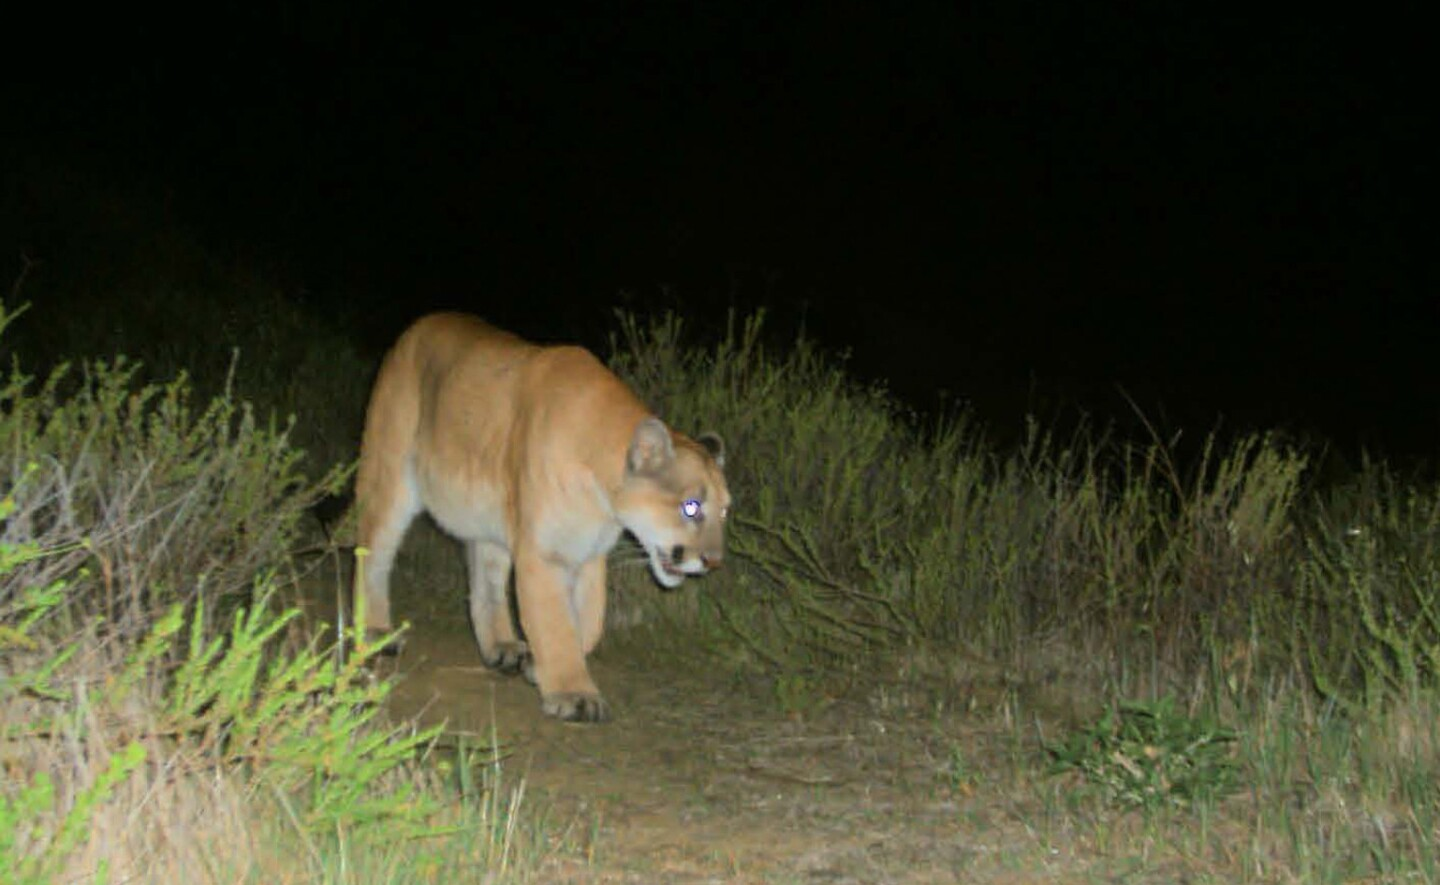 This is the first photographic evidence of mountain lion P-22 in the Griffith Park area, taken Feb. 12 at 9:15 p.m. The photo was taken using a remote camera operated by Cooper Ecological Monitoring for the Griffith Park Wildlife Connectivity Study, which is evaluating the movement of mammals through wildlife corridors that may connect Griffith Park to neighboring natural areas.